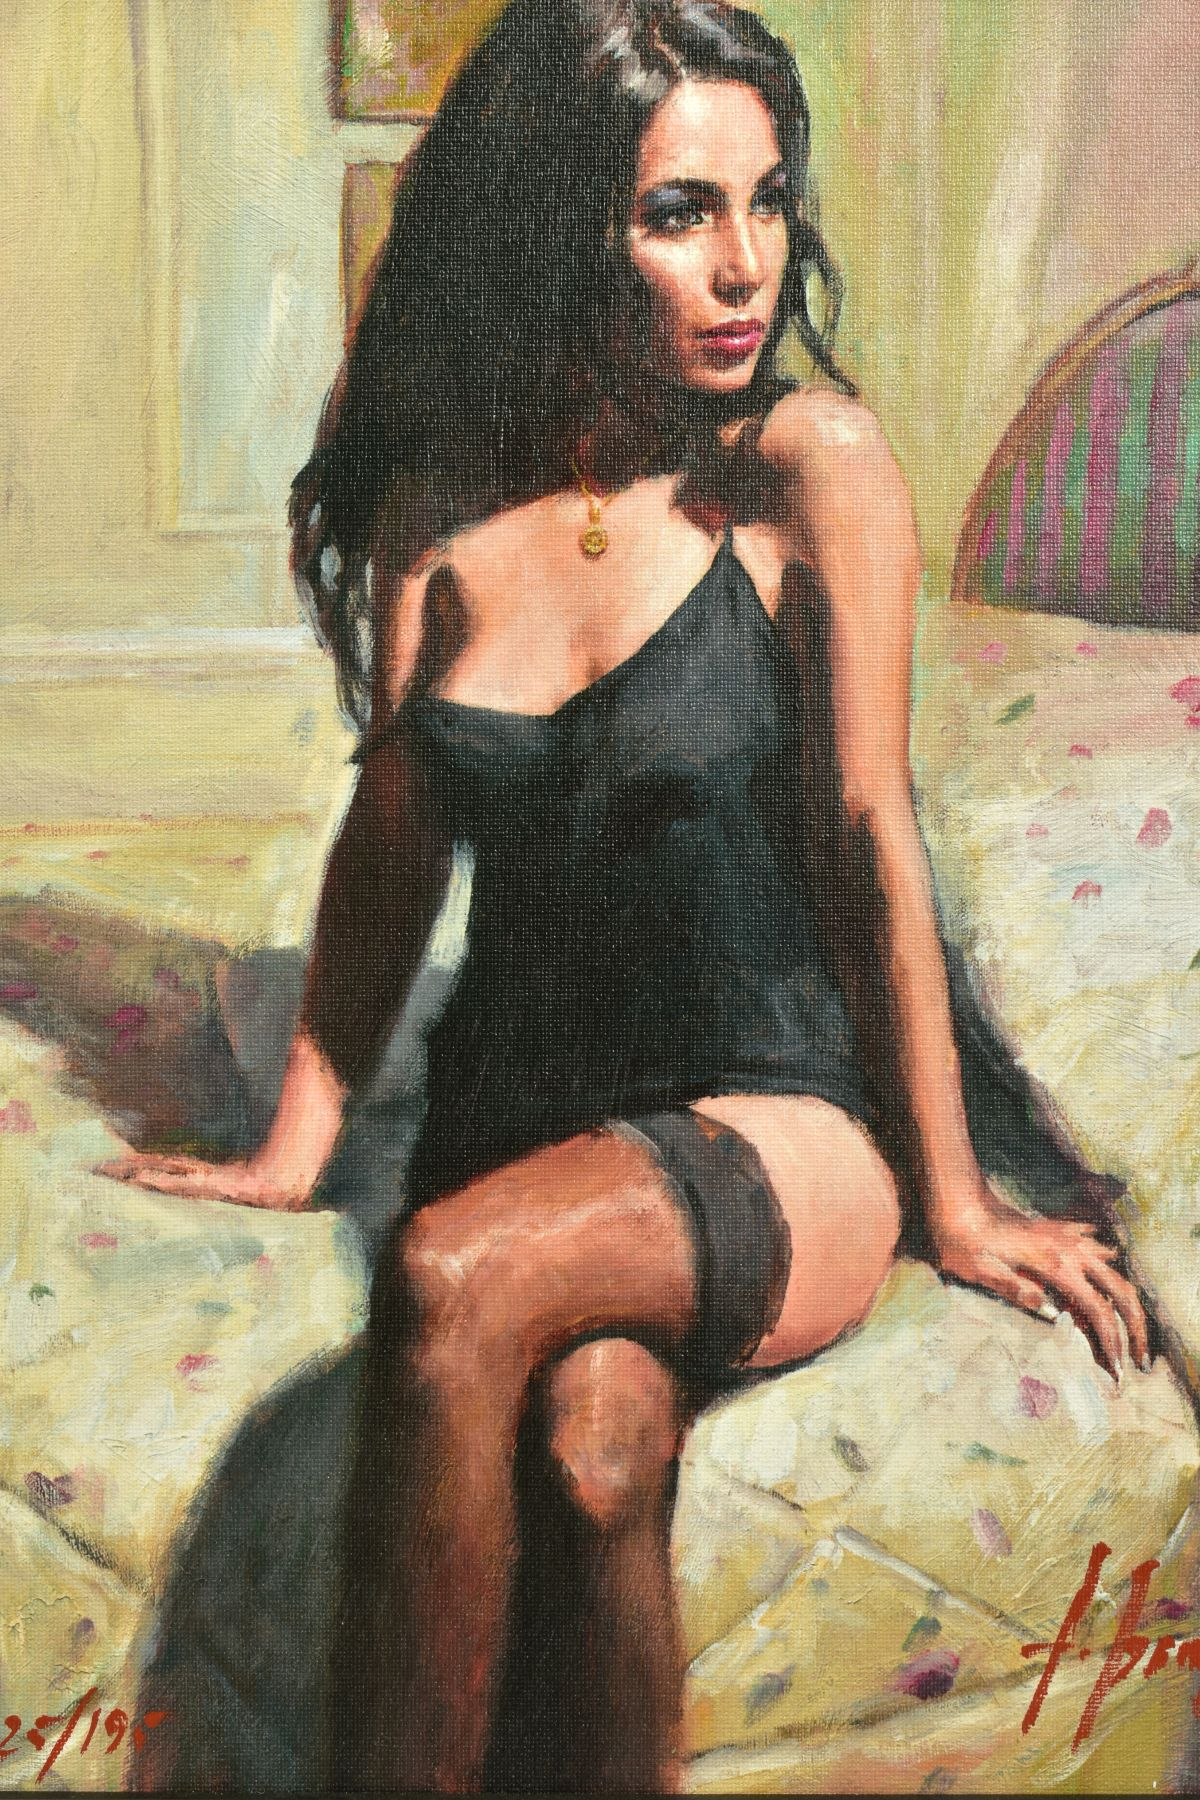 FABIAN PEREZ (ARGENTINA 1967), 'Kayleigh at The Ritz', a Limited Edition print of a female figure, - Image 2 of 8